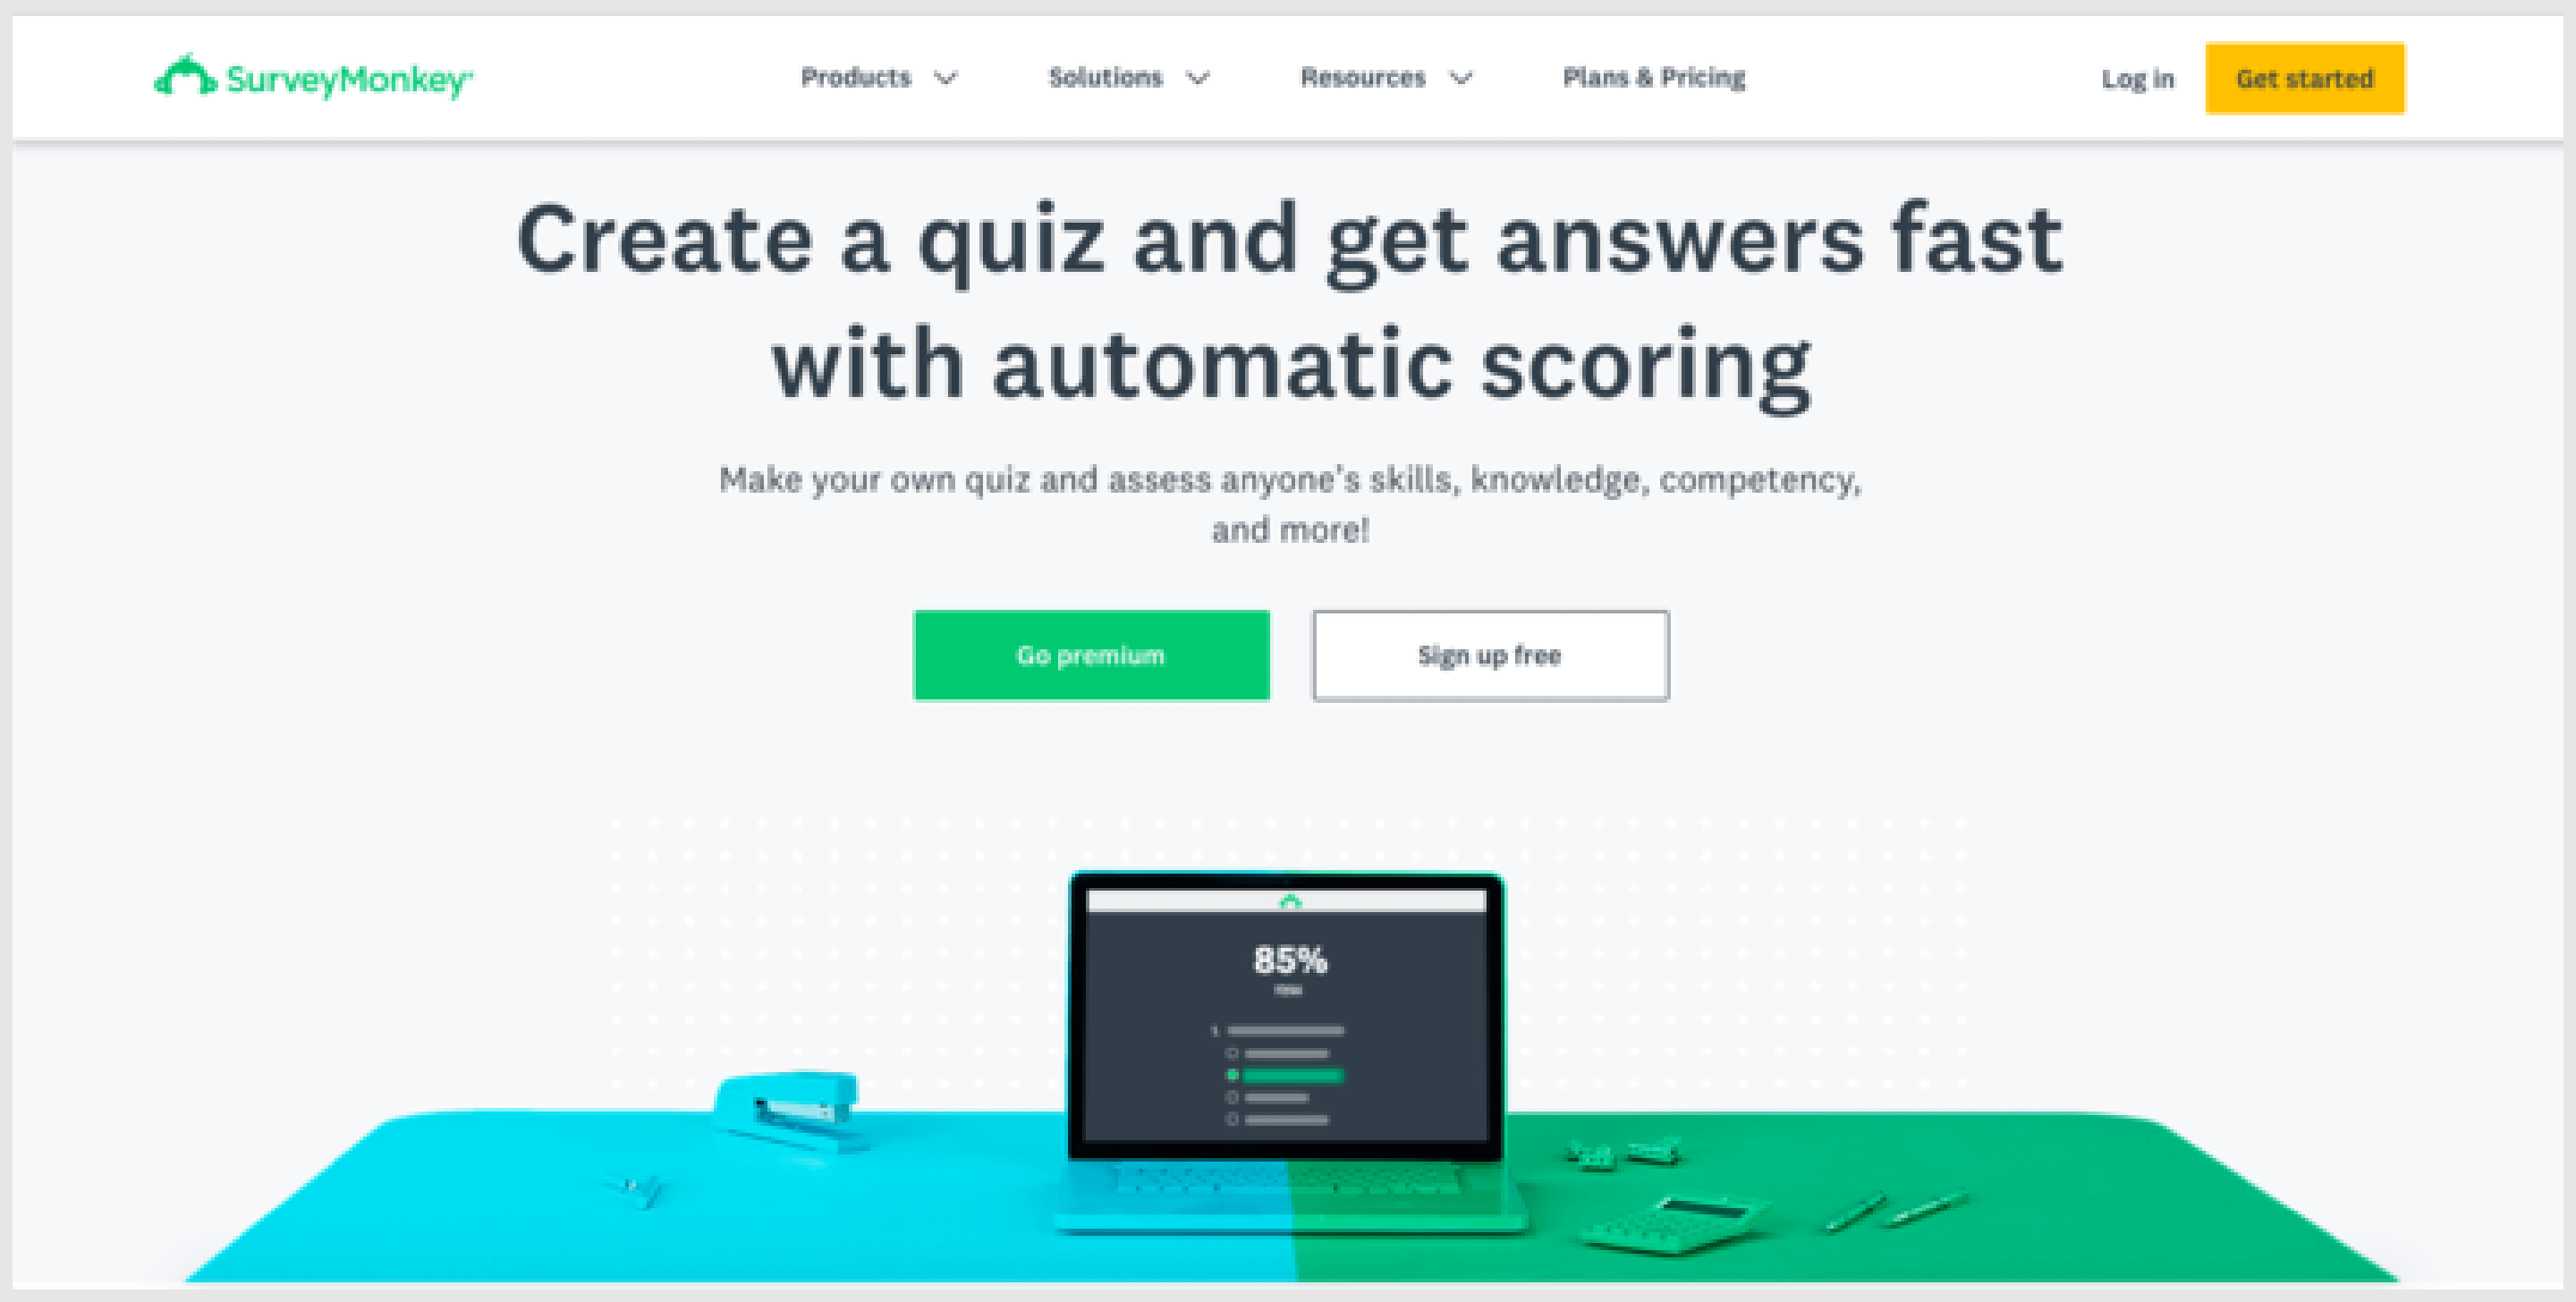 SurveyMonkey helps craft polls and questionnaires in a few minutes.